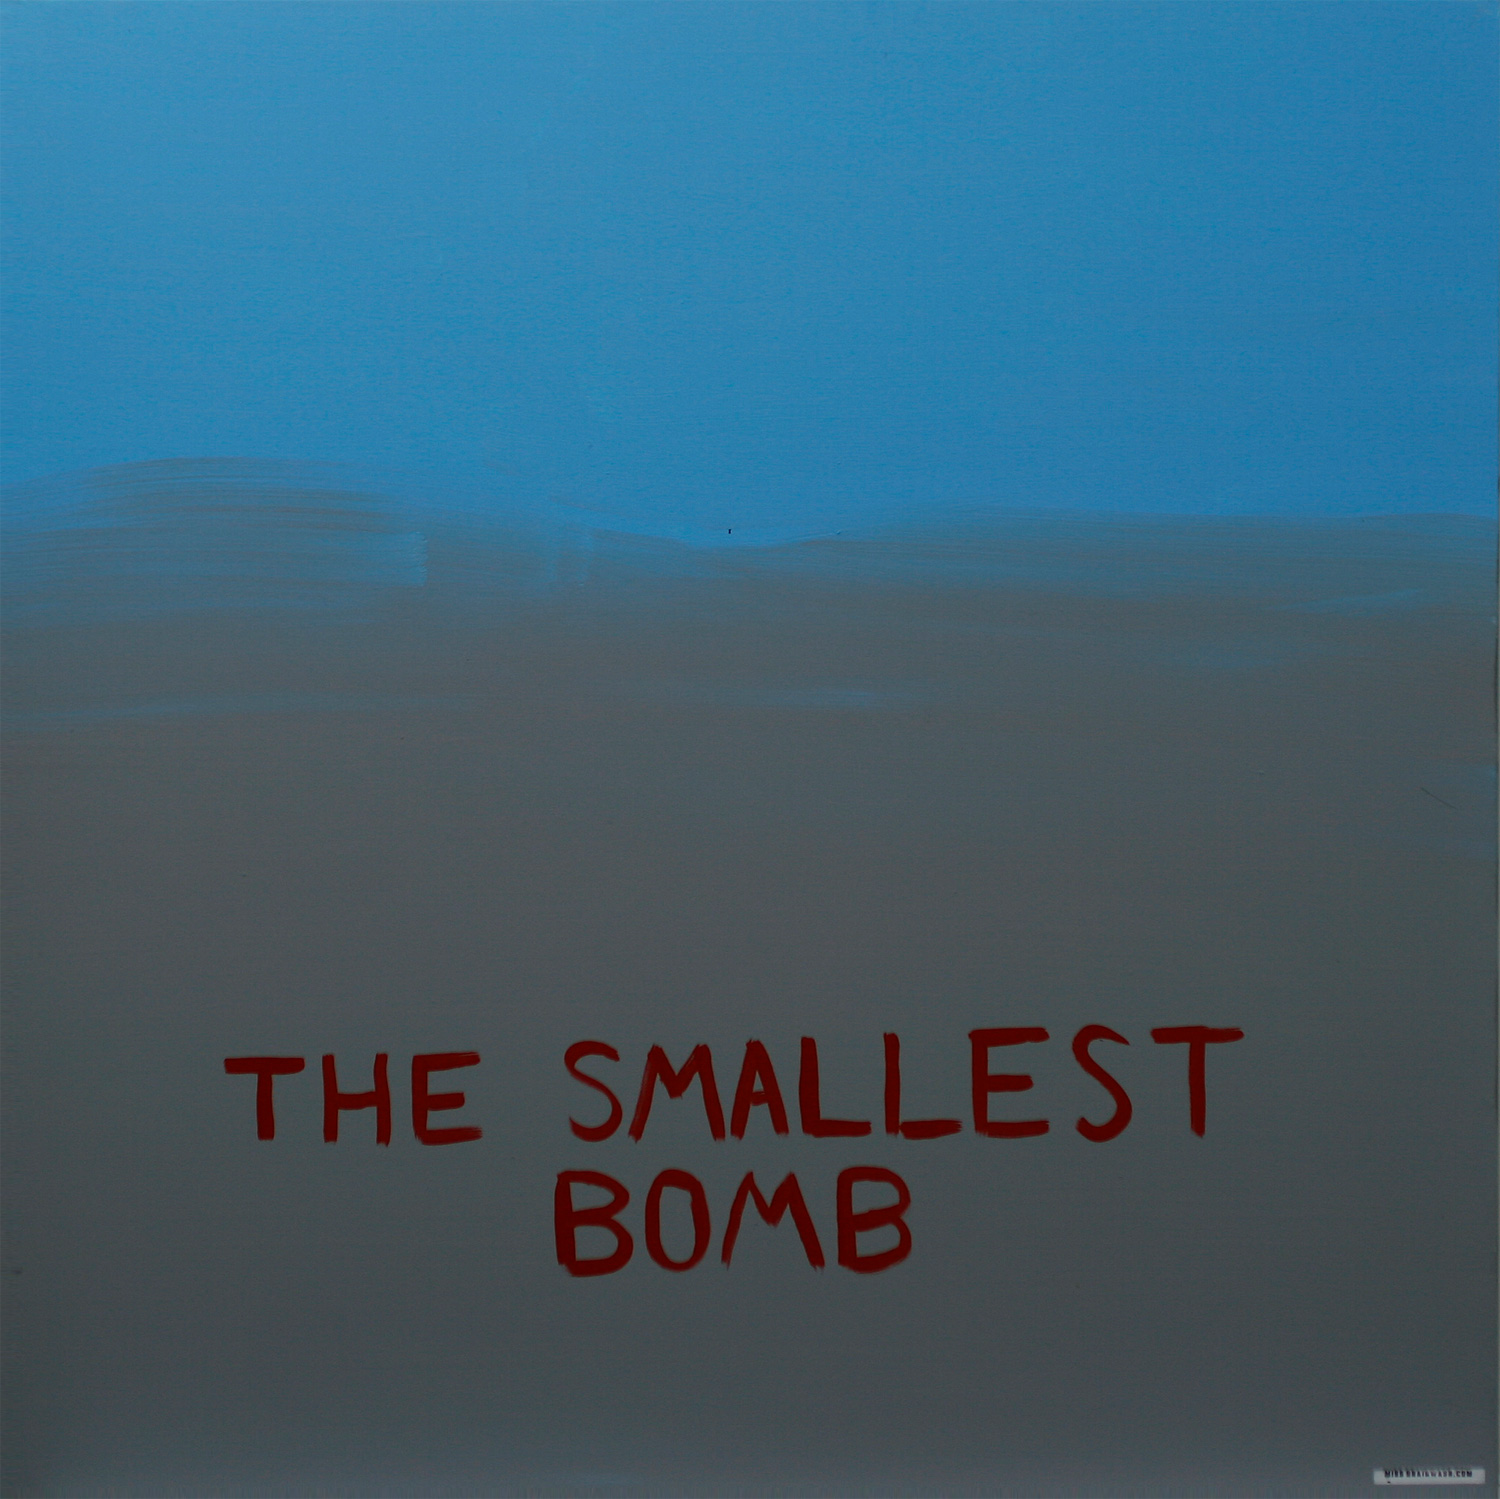 The smallest bomb